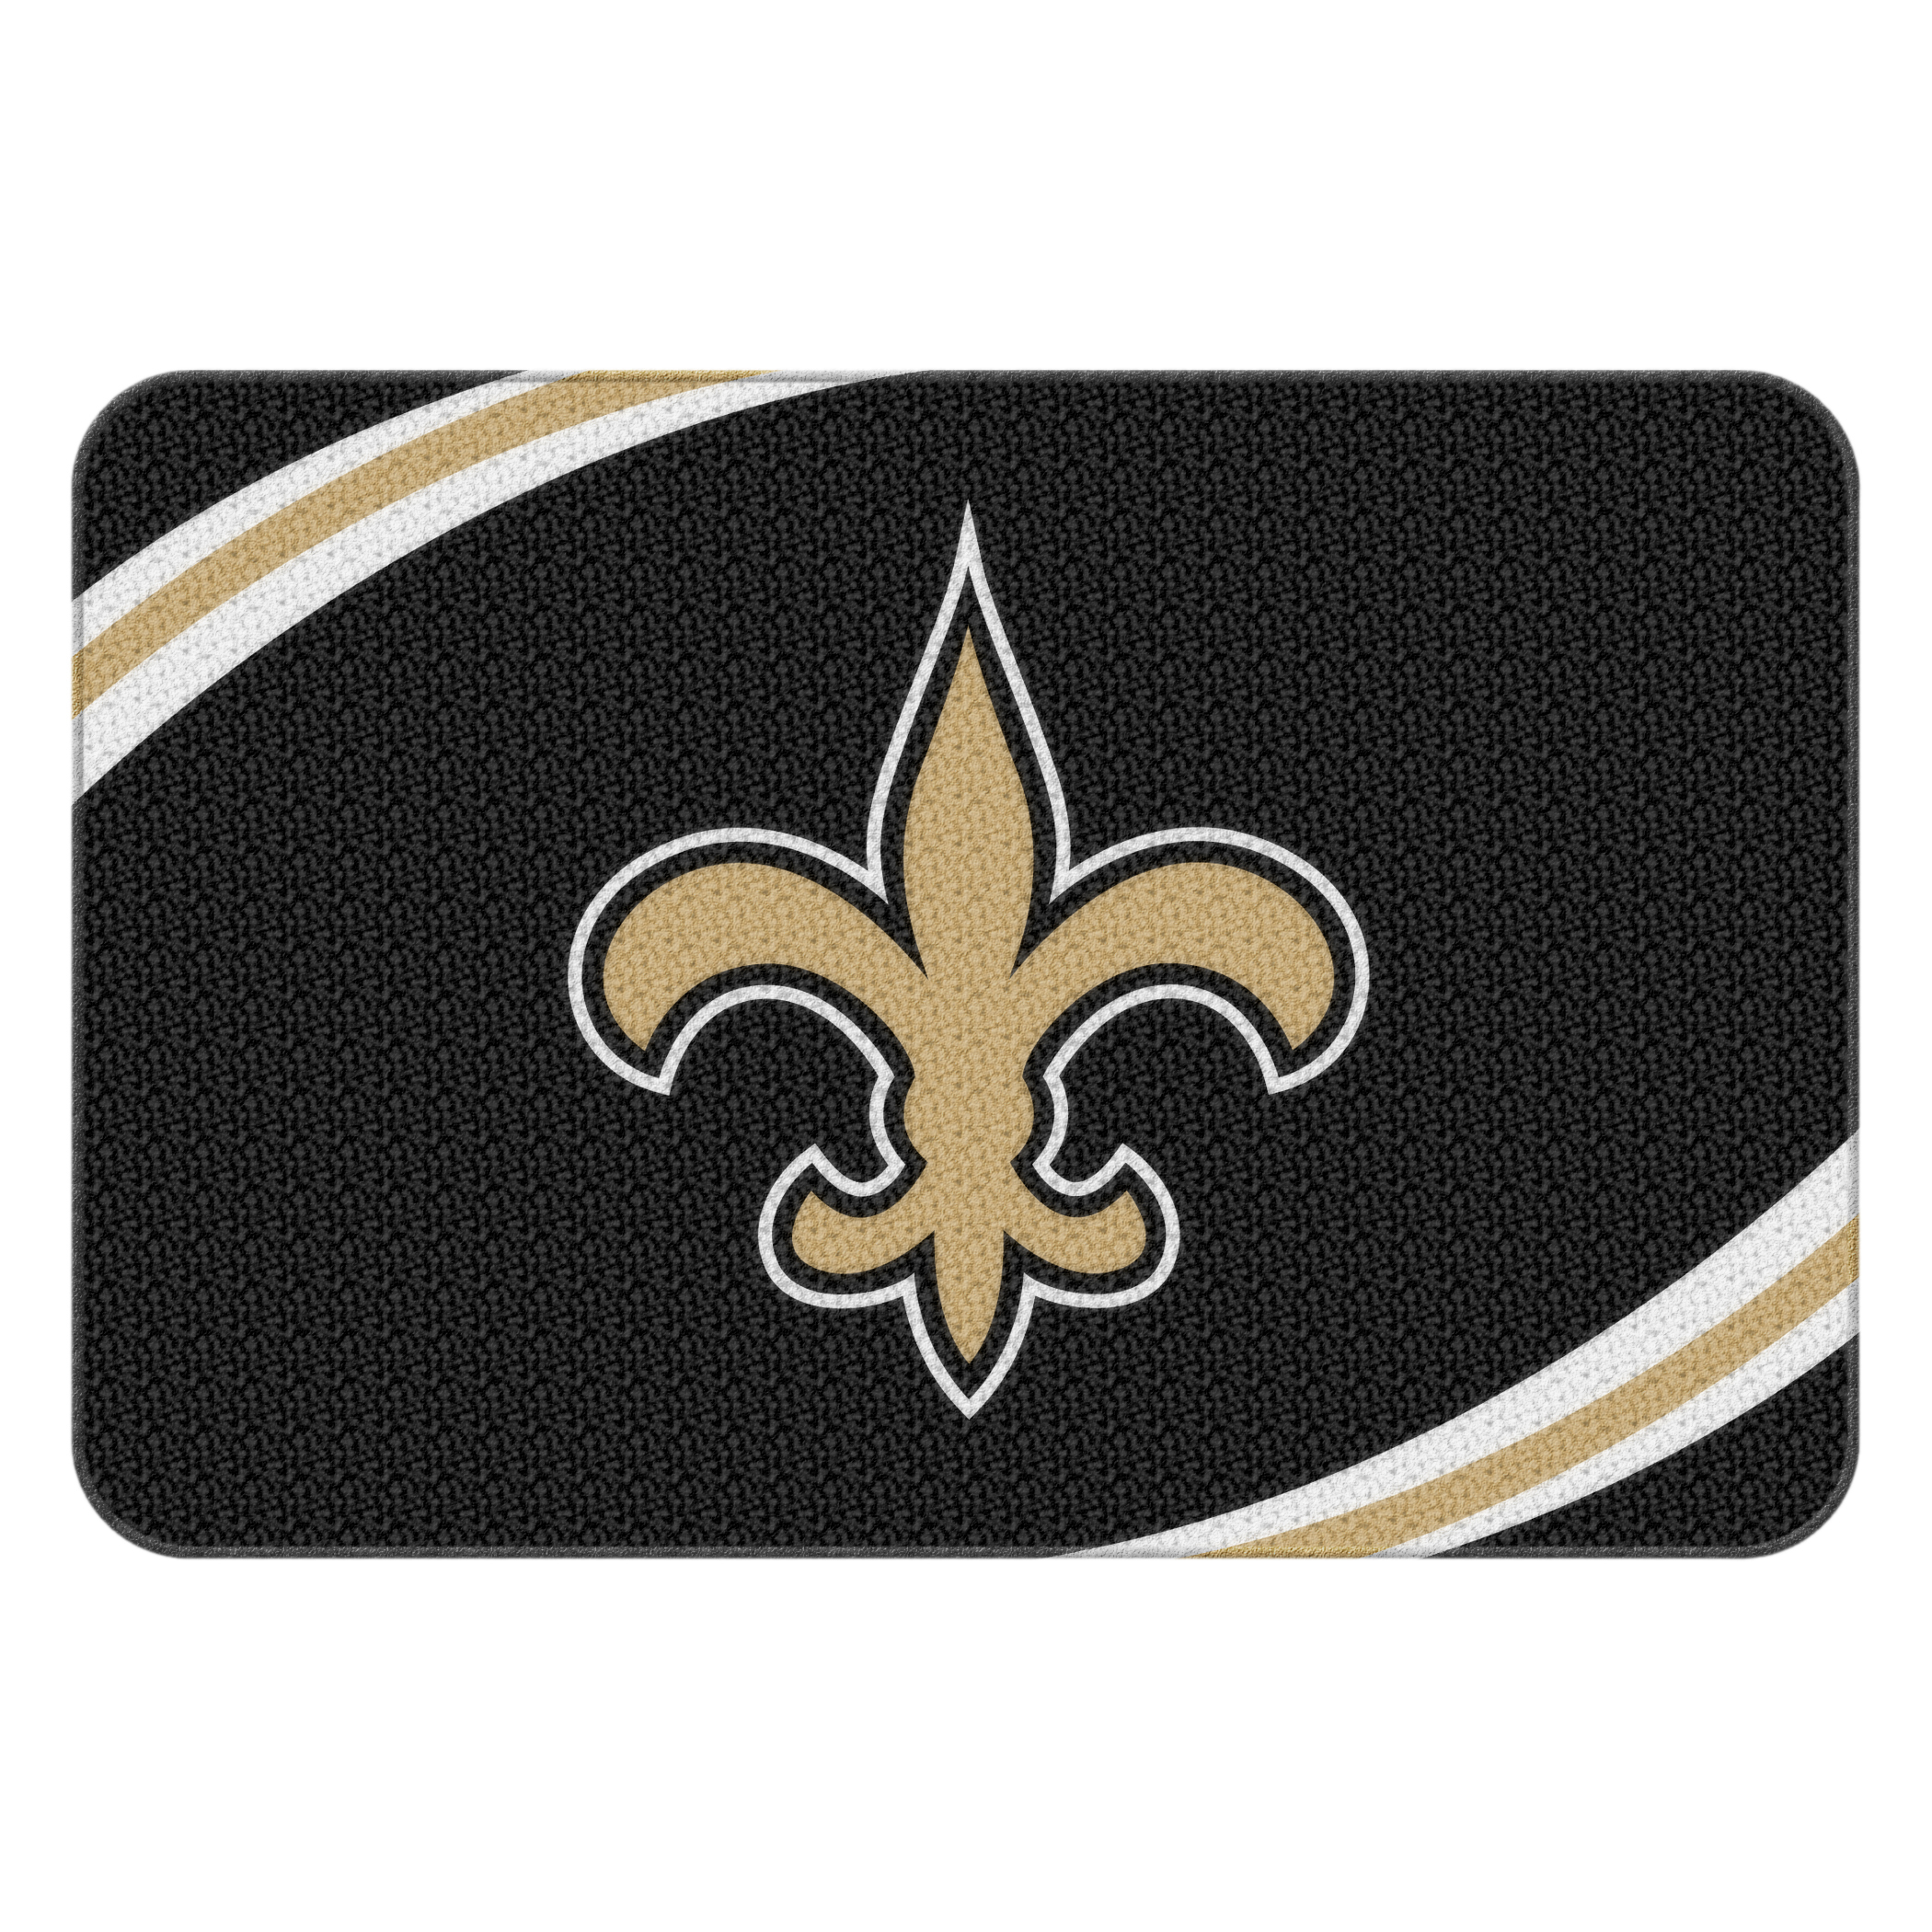 "NFL New Orleans Saints 20"" x 30"" Round Edge Bath Rug"